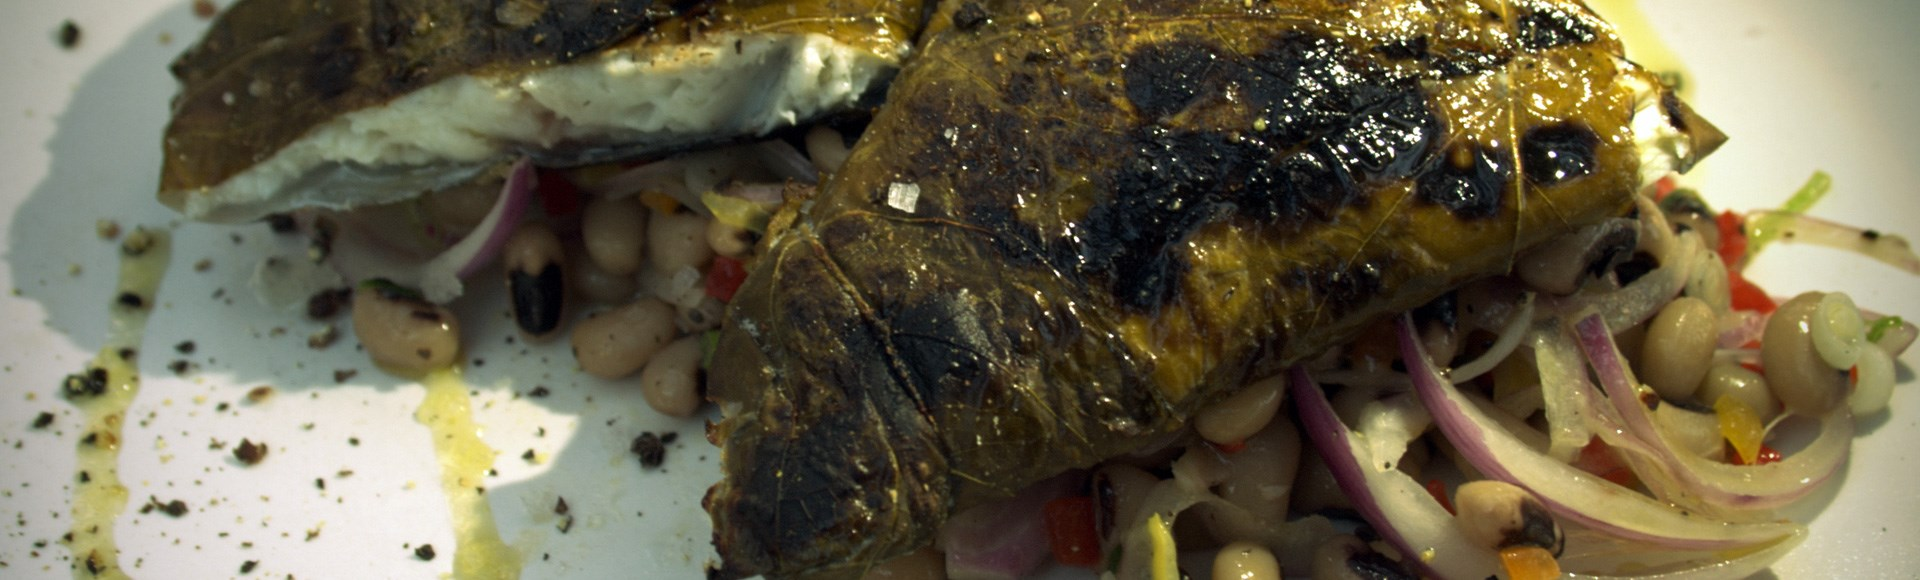 grilled-seabass-fillet-wrapped-in-vine-leaves-private-chef-chania-1 - Private Chef Service For Your Villa Holidays In Crete